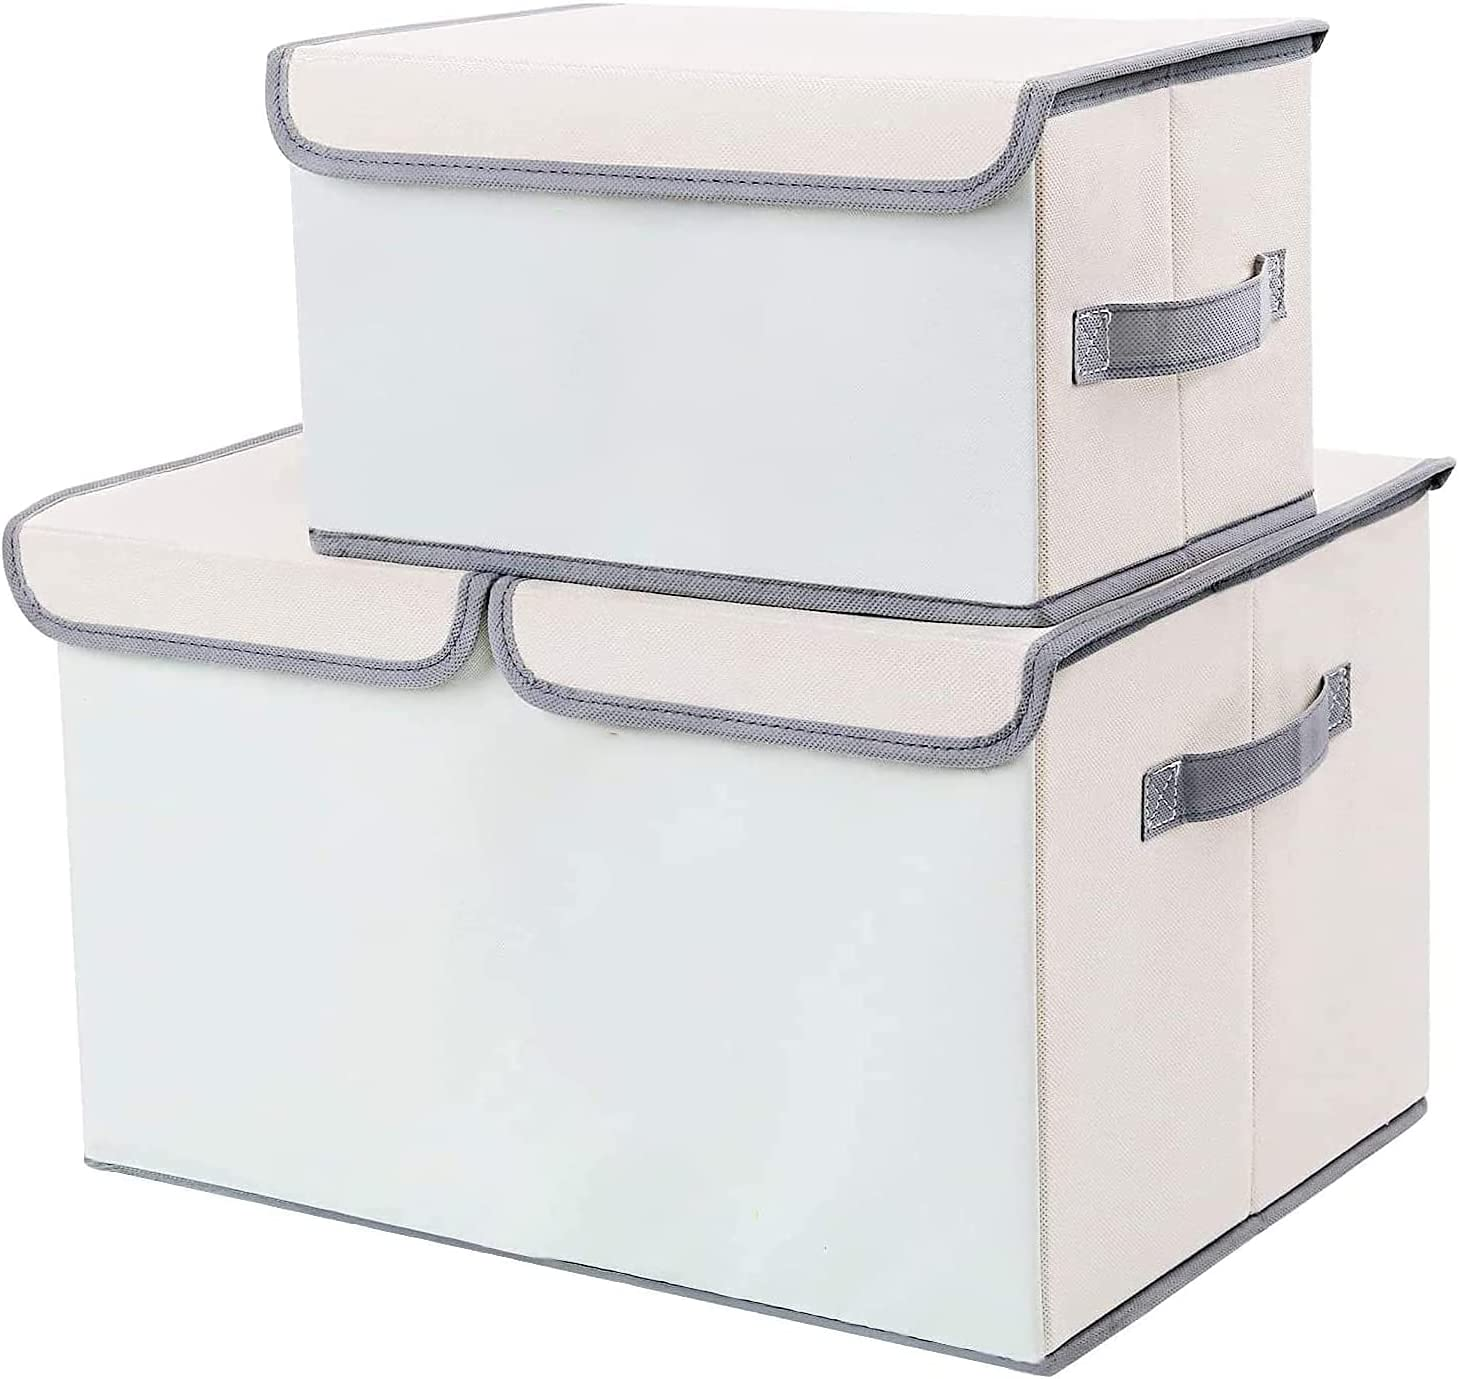 SIWUCHEY Toy Boxes Chest Popular shop is Max 44% OFF the lowest price challenge and